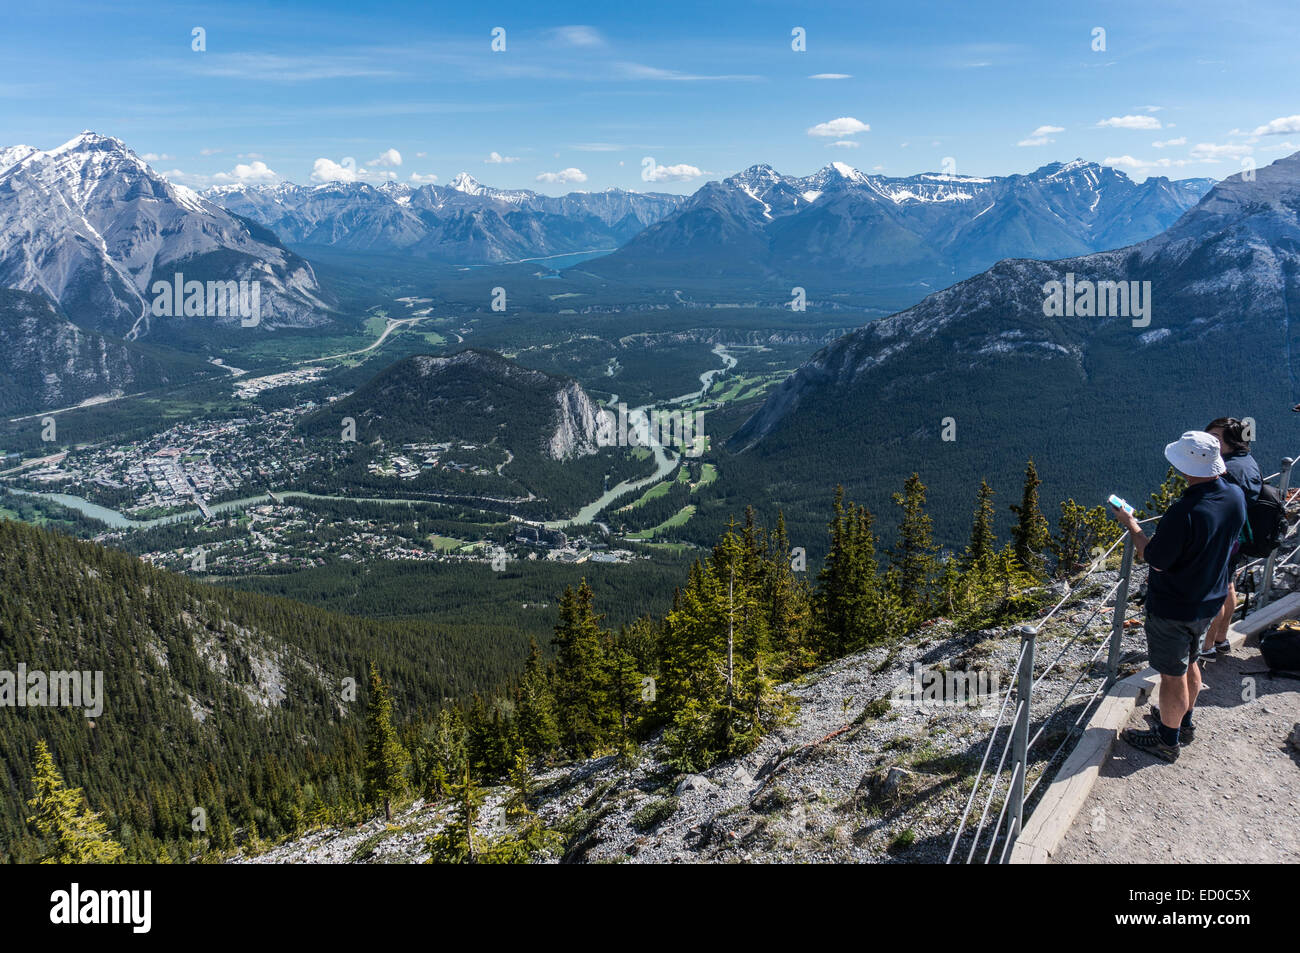 Canada, Alberta, Banff National Park, Two people looking at view from Sulphur Mountain - Stock Image